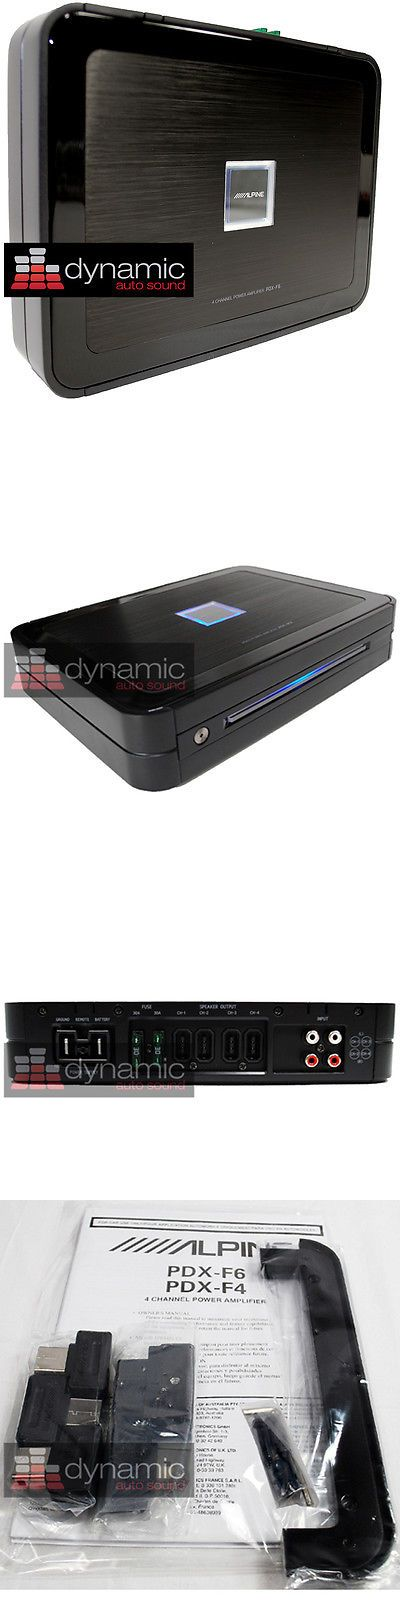 Car Amplifiers: Alpine Pdx-F6 Digital Car Amplifier 600 Watt 4 Speaker Sub Woofer Amp Pdxf6 New -> BUY IT NOW ONLY: $419.95 on eBay!